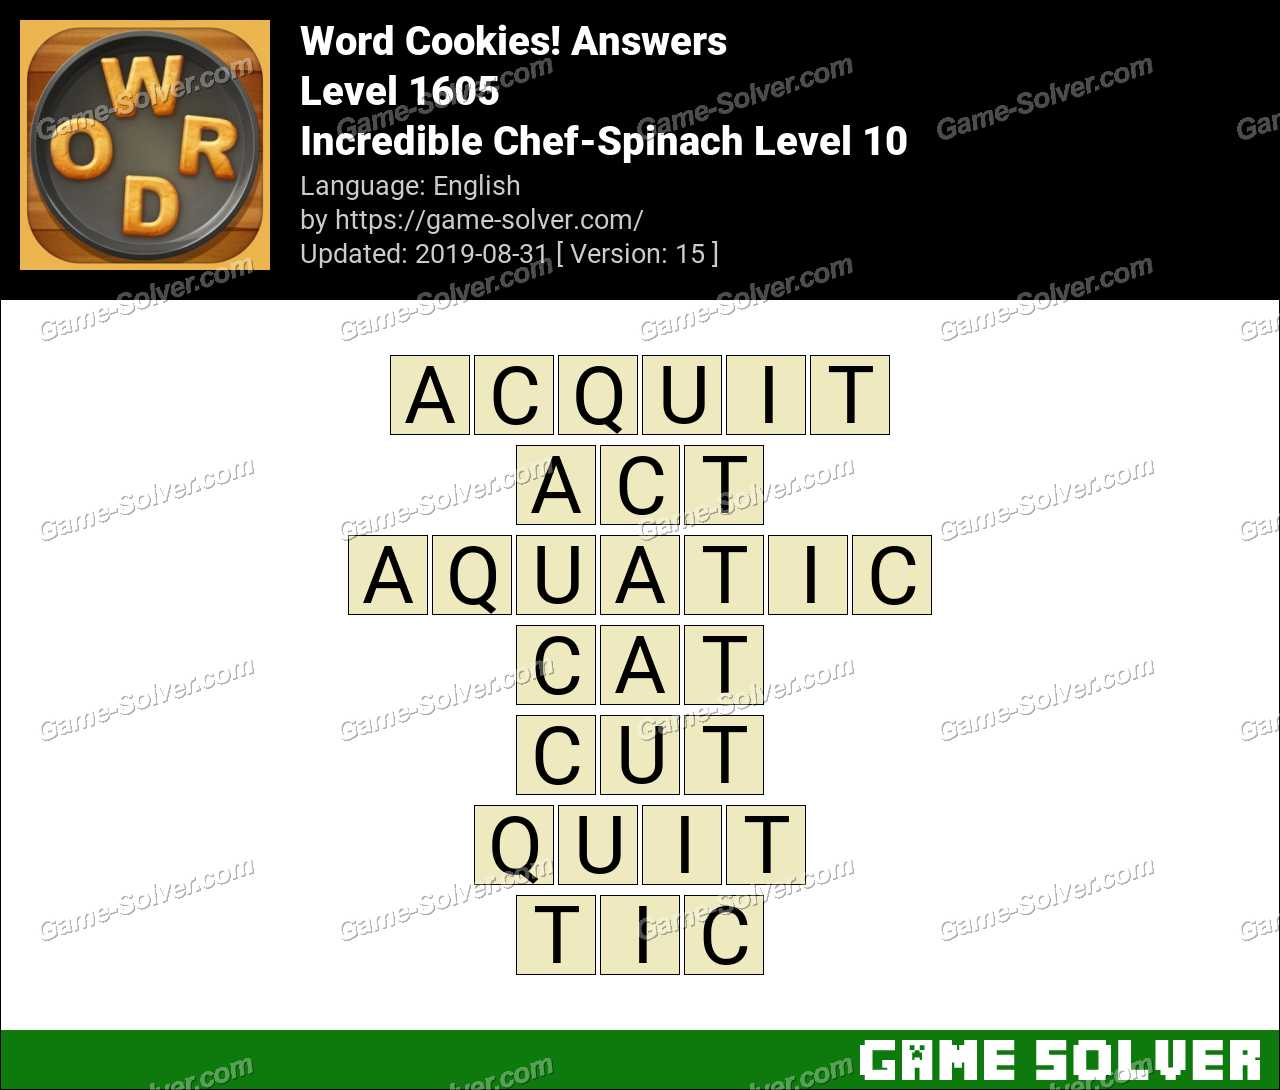 Word Cookies Incredible Chef-Spinach Level 10 Answers